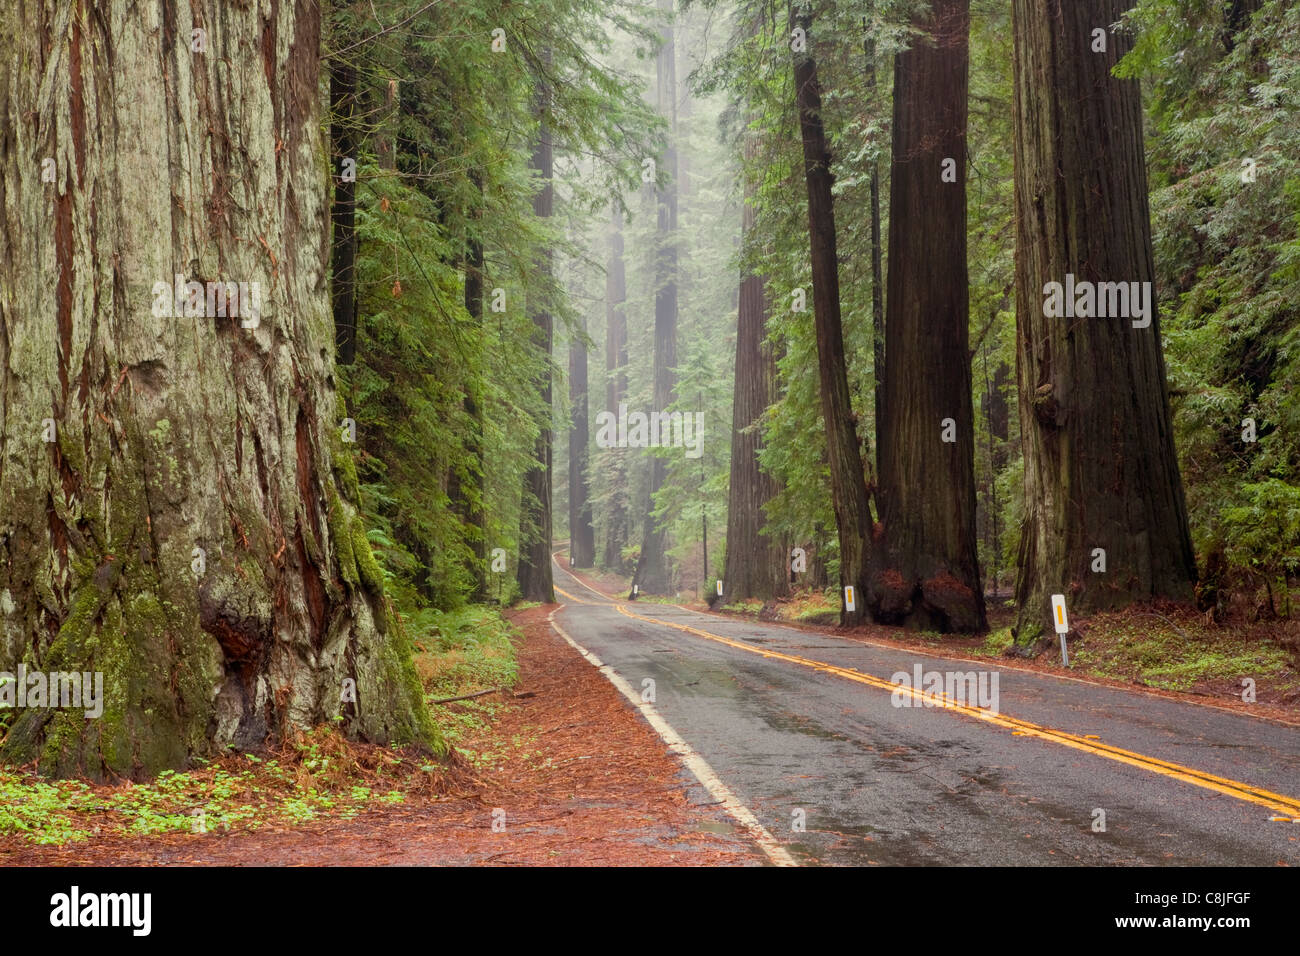 CA00902-00...CALIFORNIA - Avenue of the Giants through Humboldt Redwoods State Park. - Stock Image